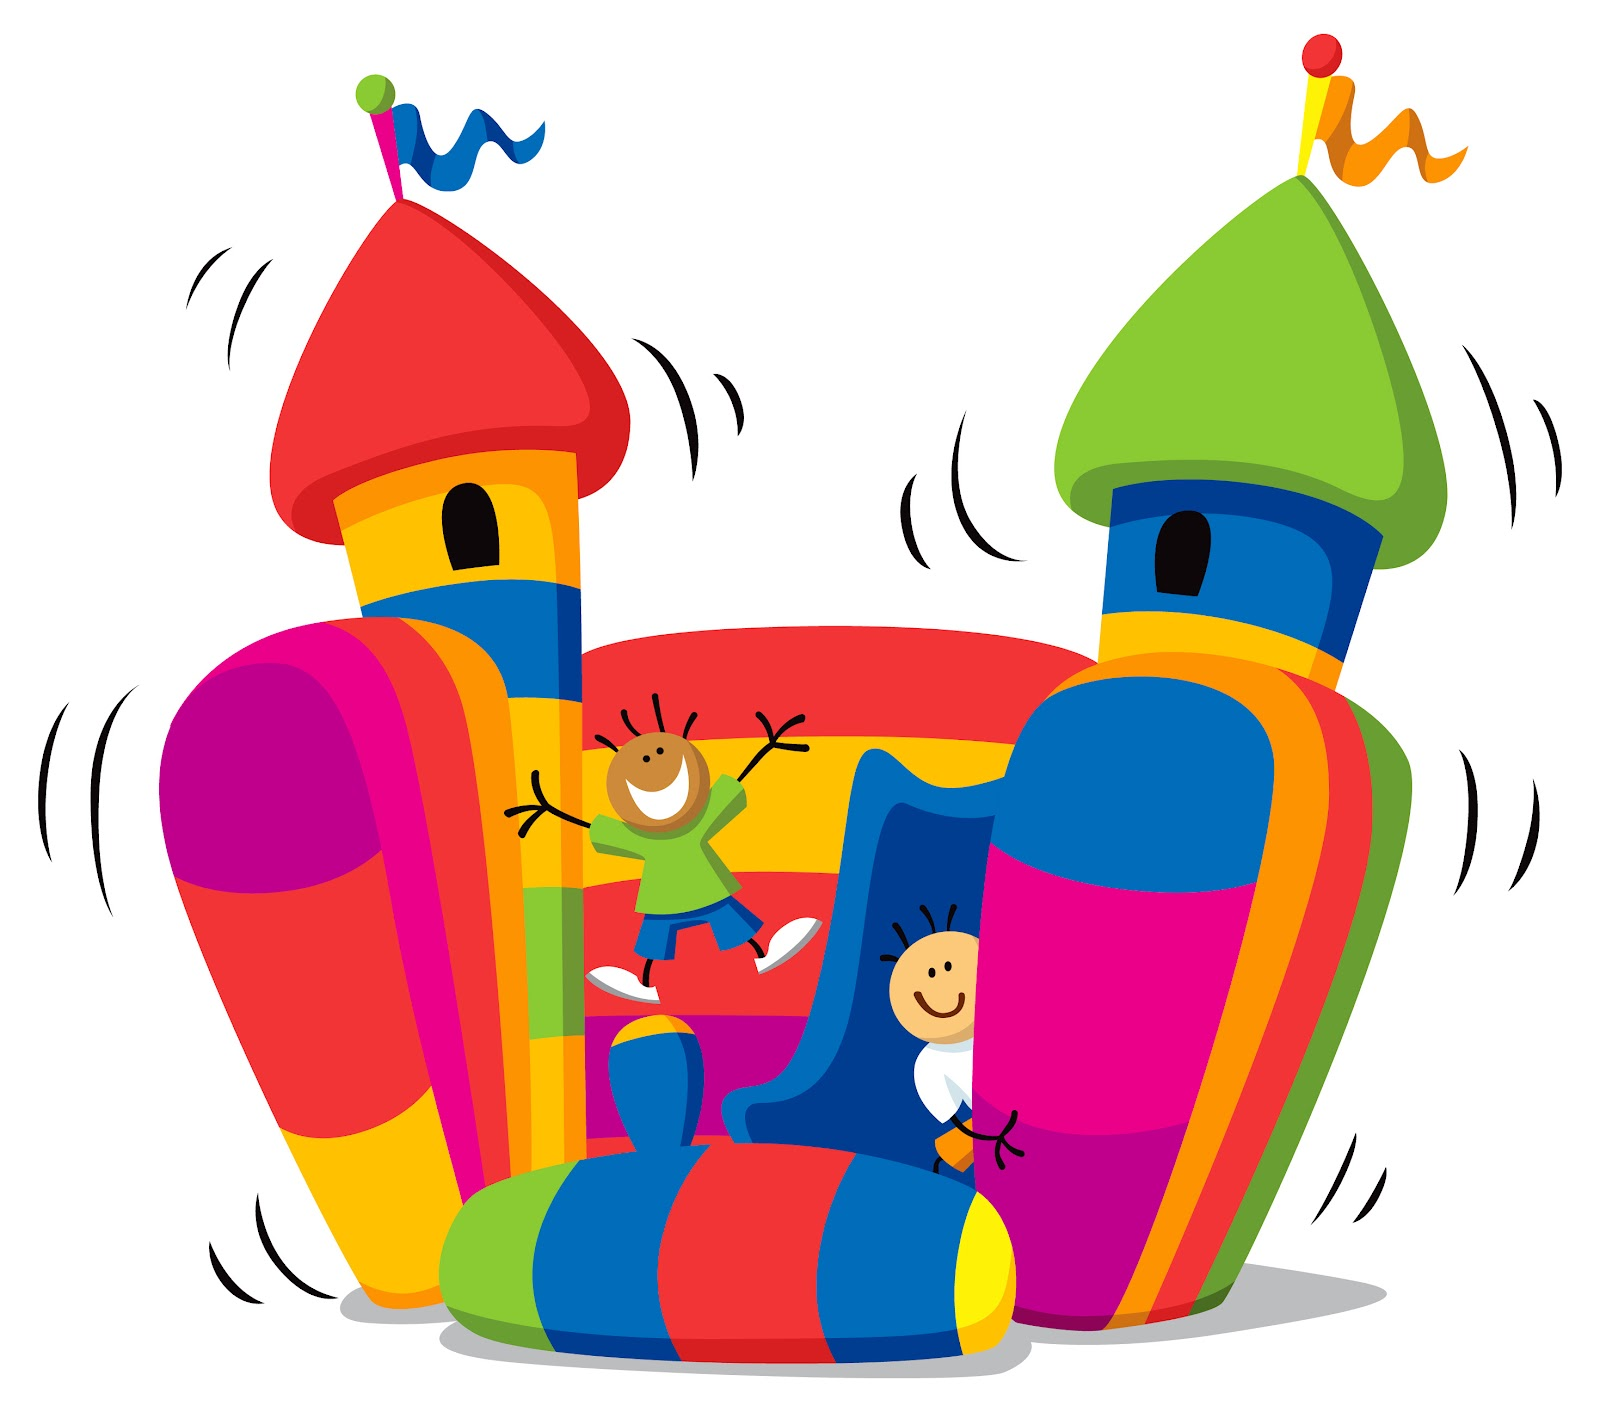 Bouncy Castles - Brief History